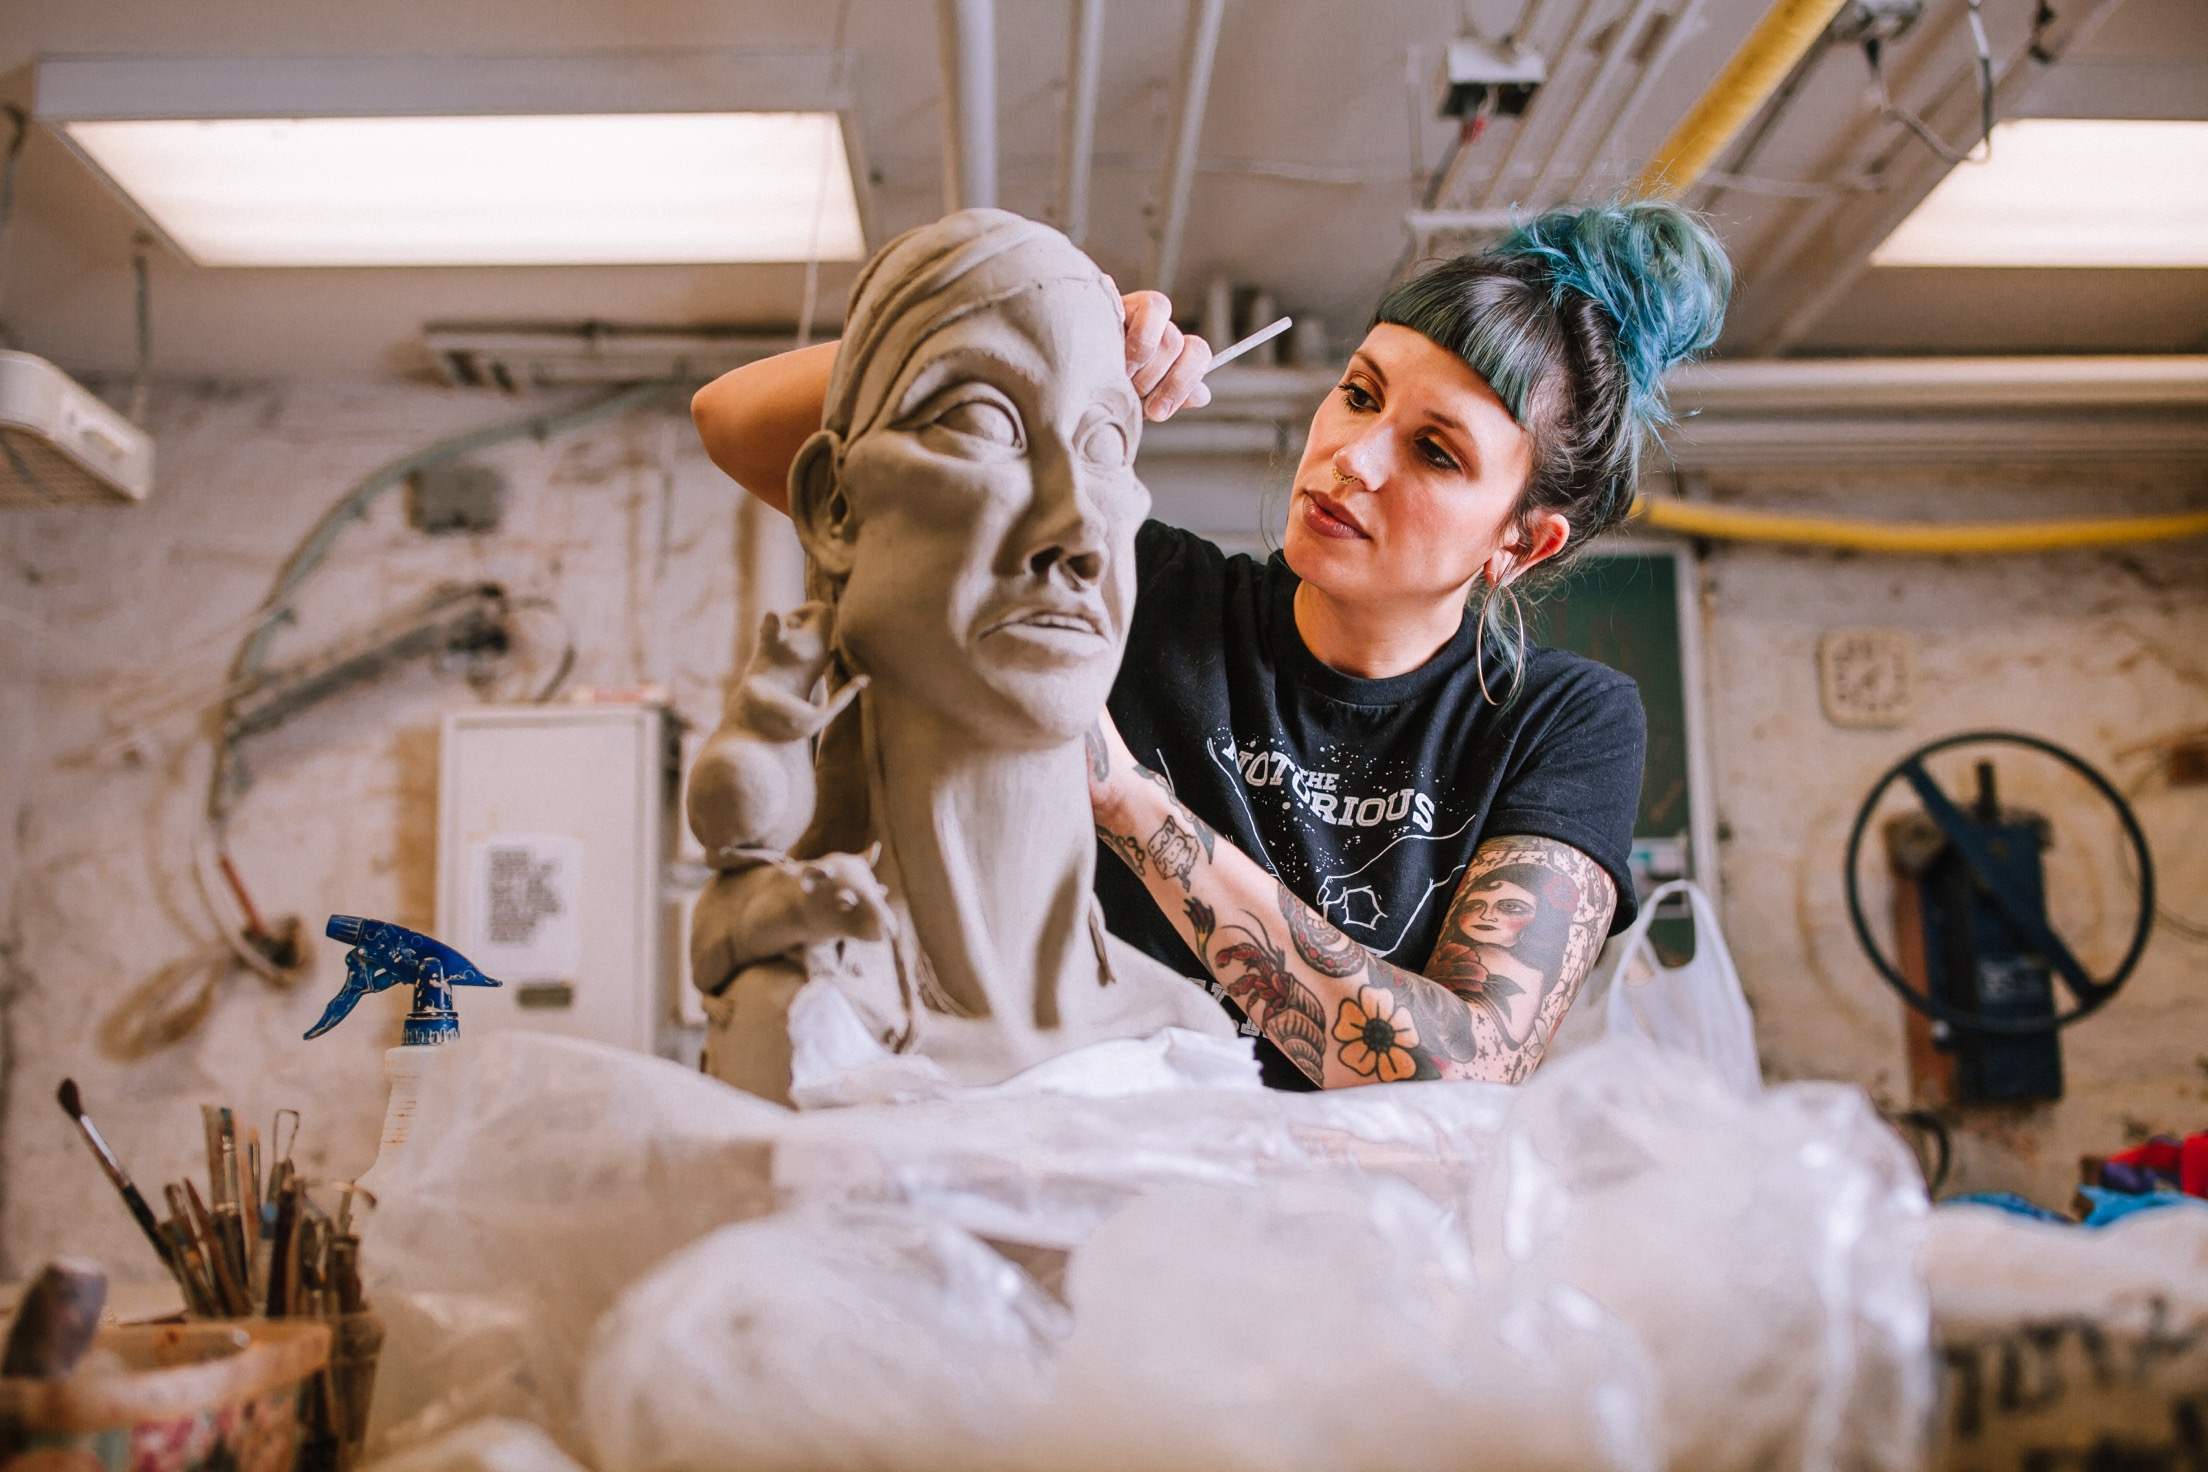 About… - Kara Zuzu is a Pittsburgh based ceramic sculpture artist.  She creates one of a kind sculptures that are inspired by animals, women, and narratives from her lived experiences.